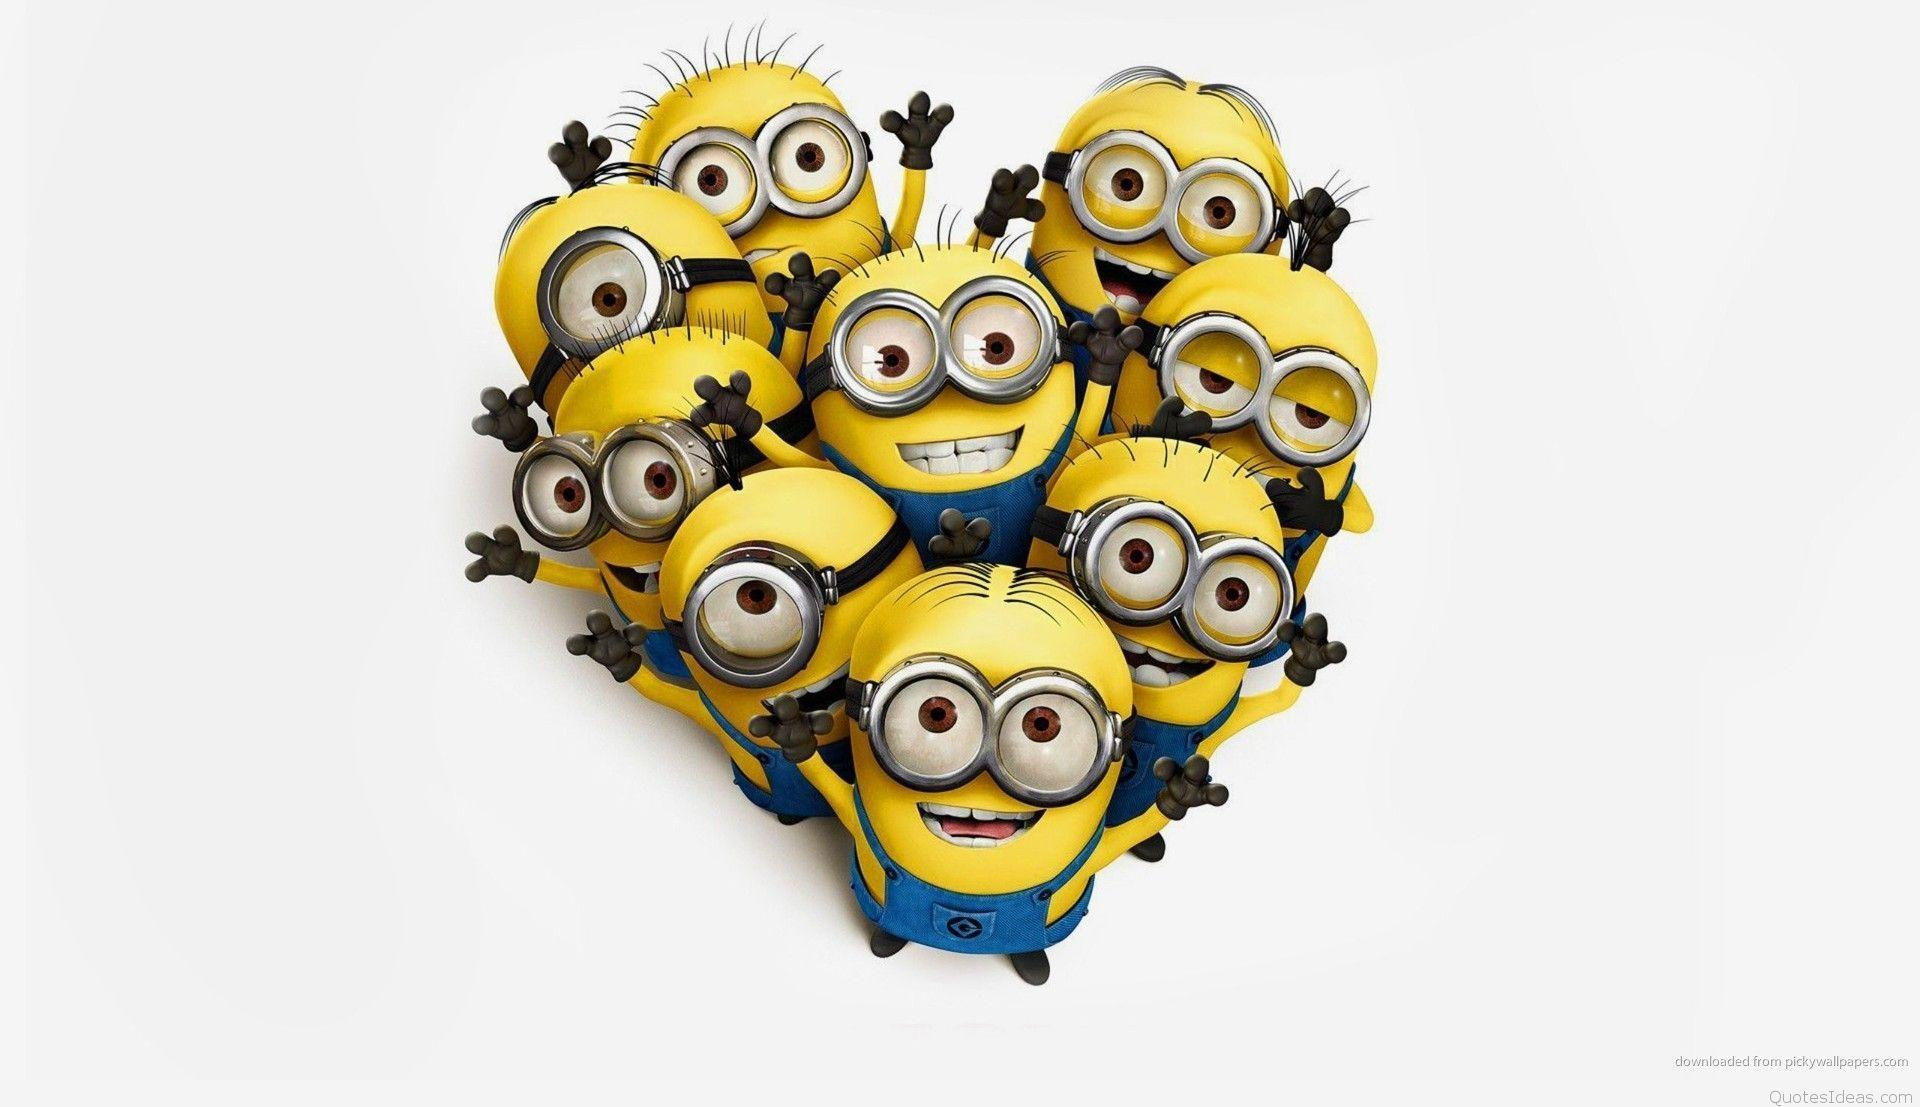 Funny Despicable Me 3 Images, Wallpapers Hd Cartoons